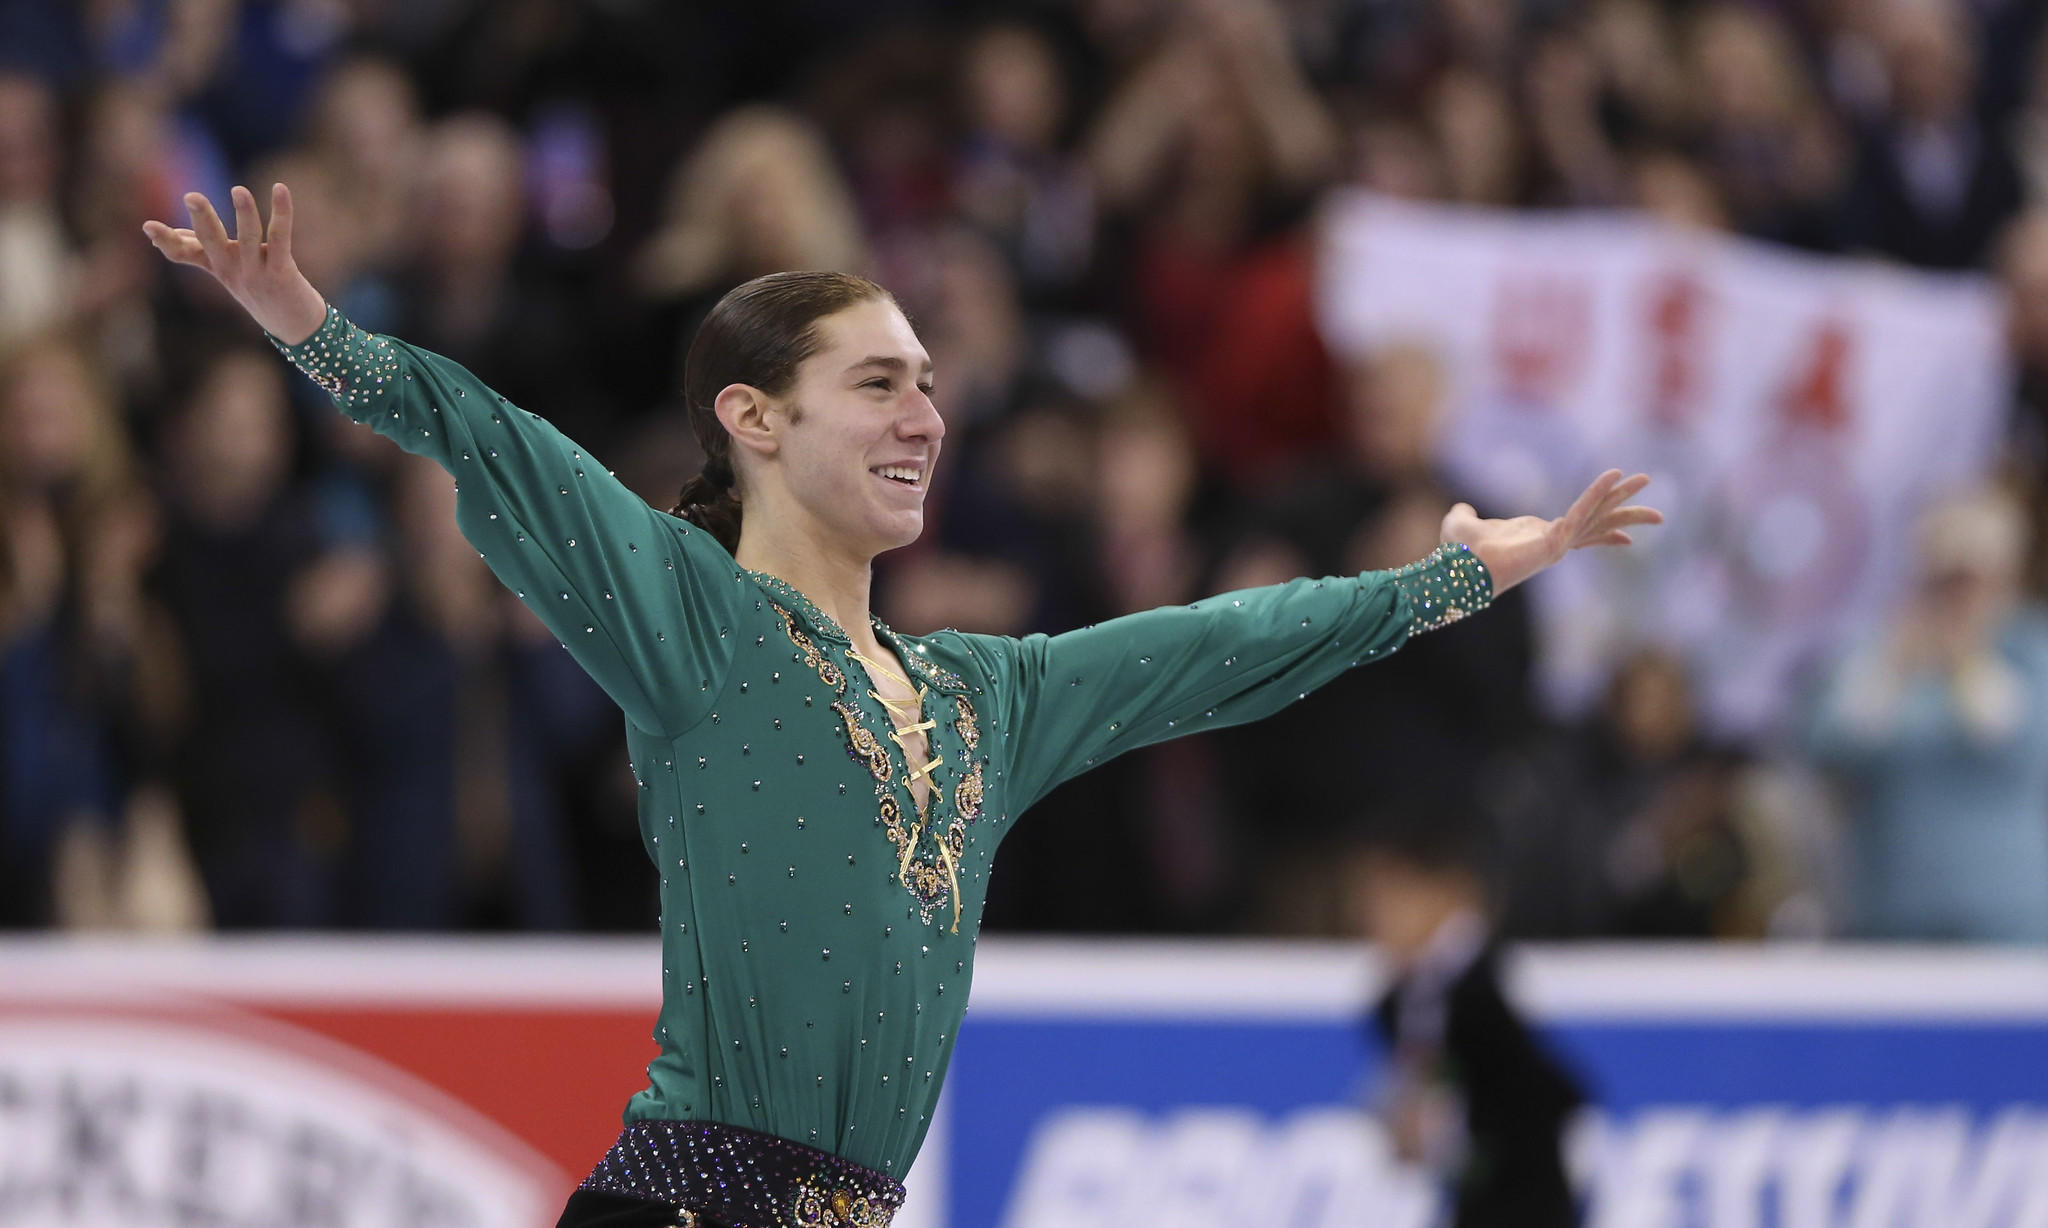 Jason Brown performs during the men's free skate in the U.S. Figure Skating Championships at TD Garden.